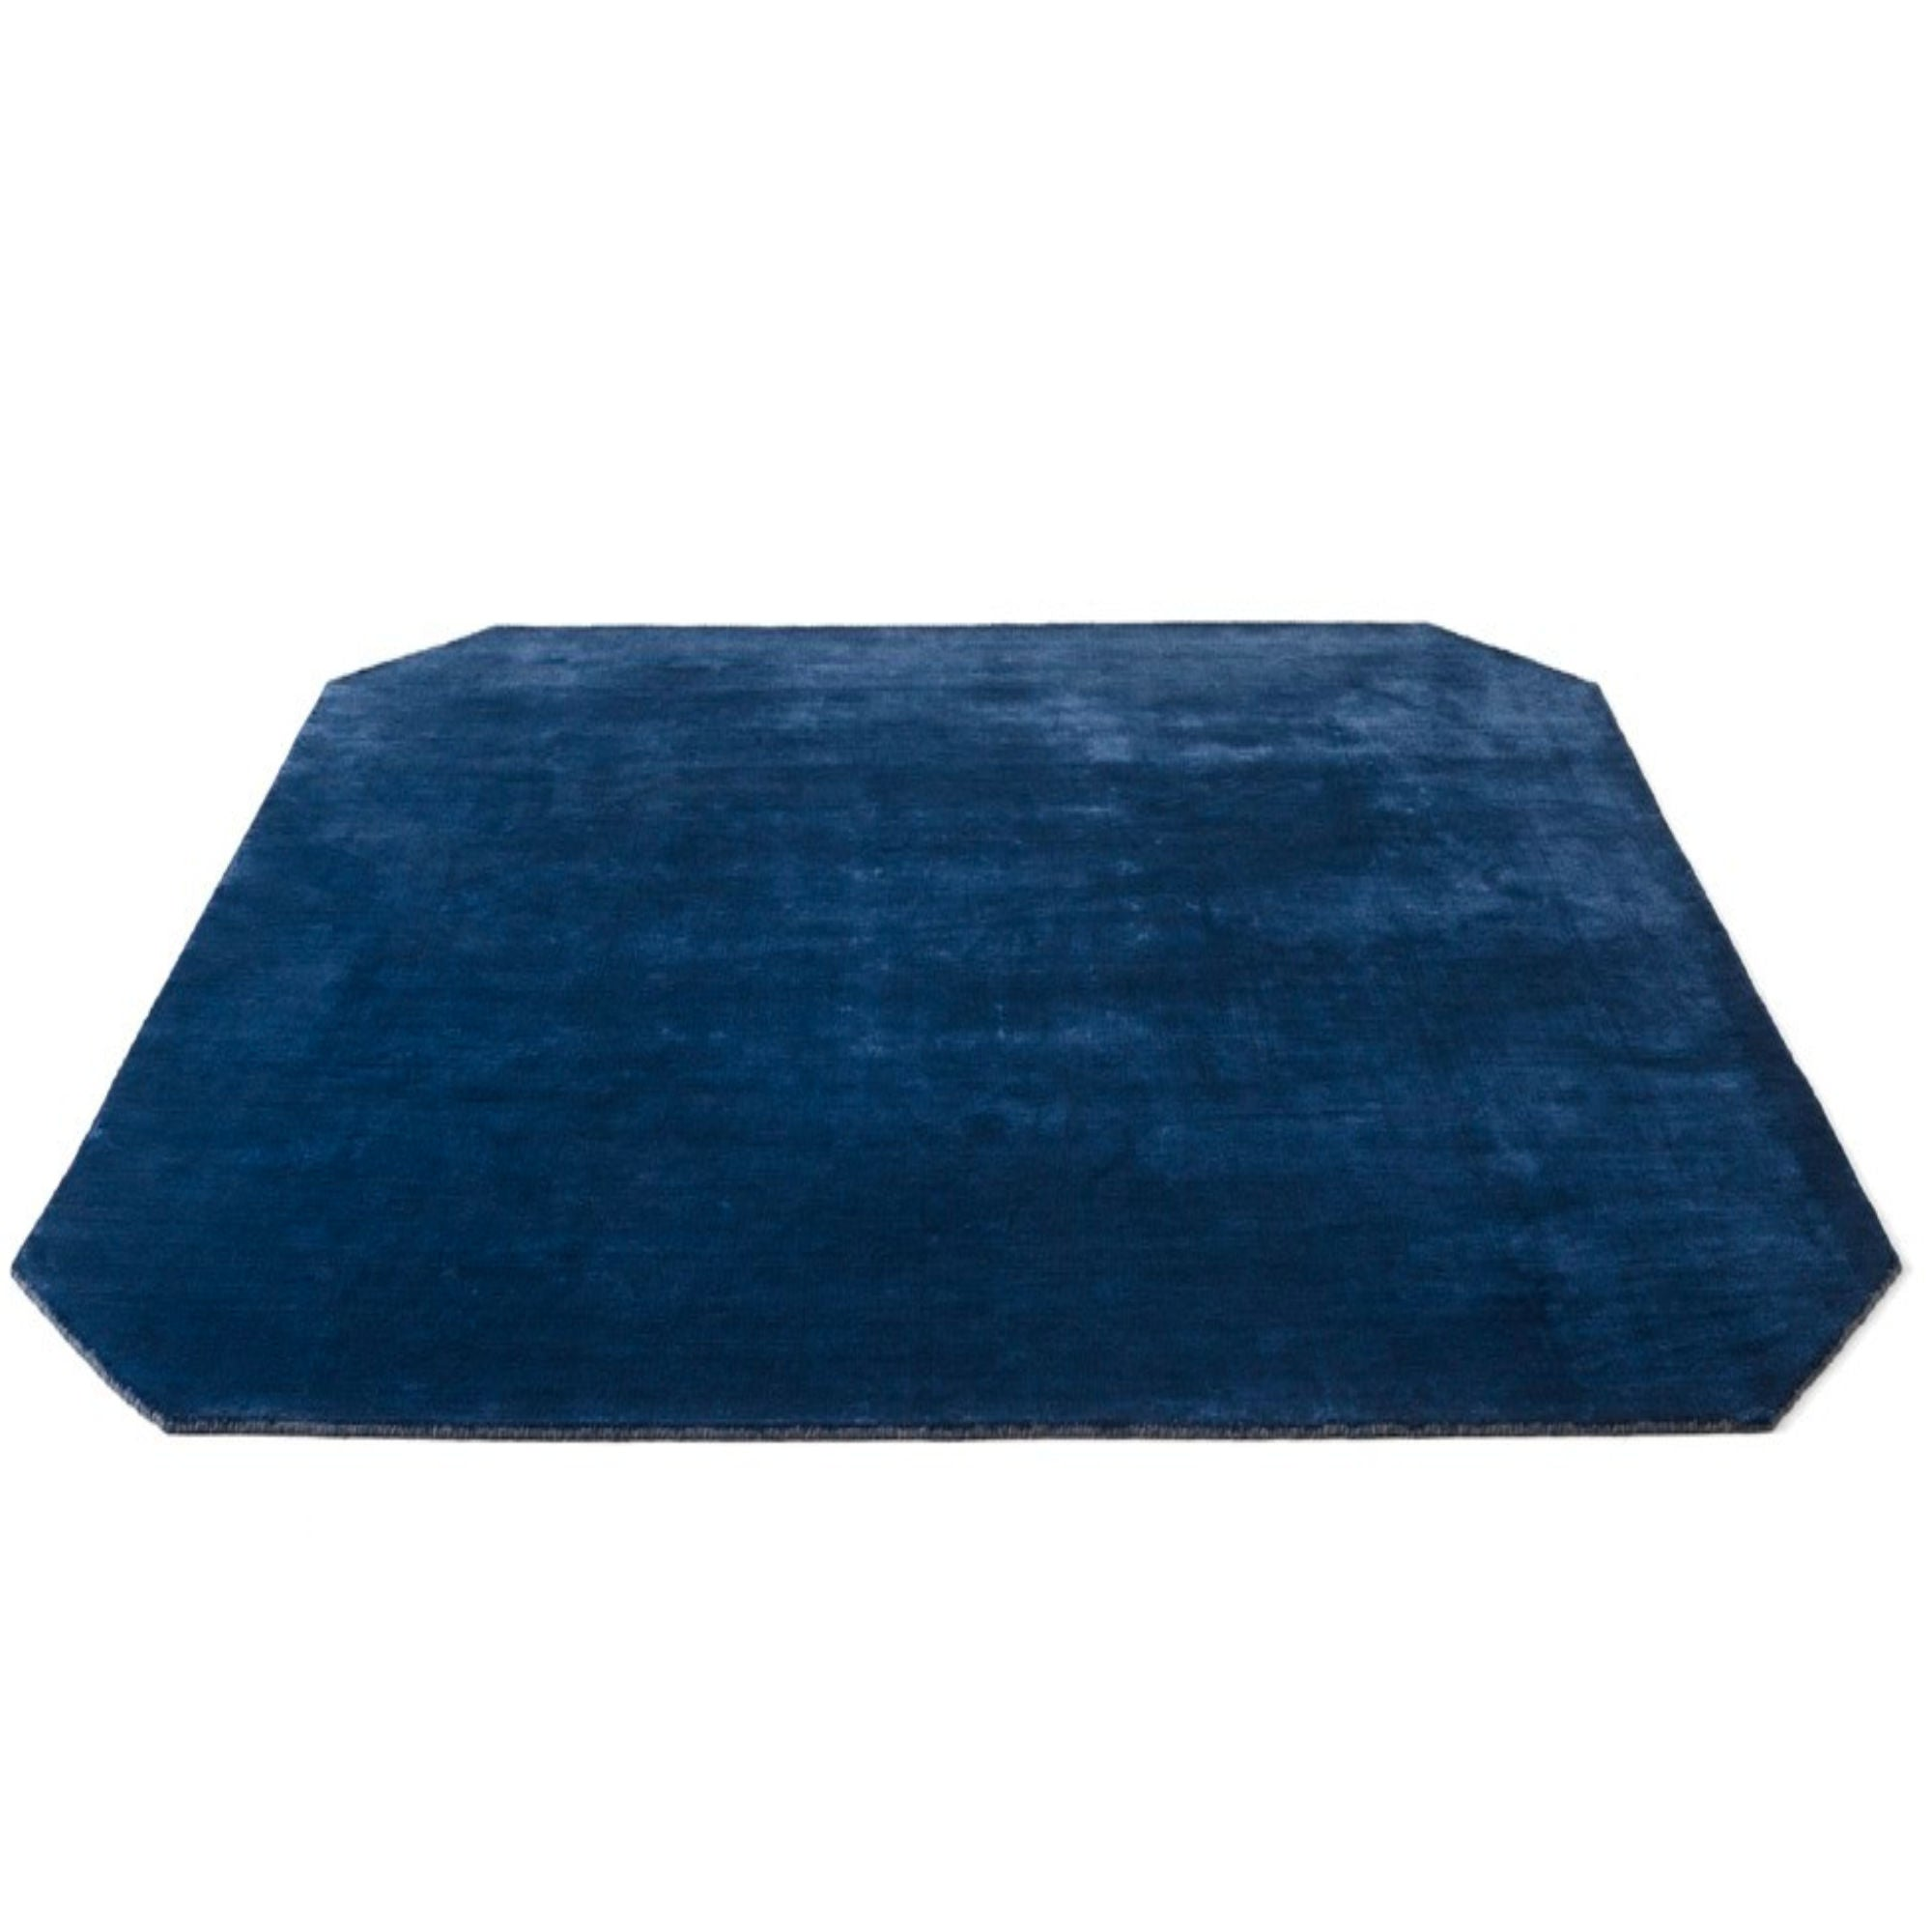 AP8 The Moor Rug 300*300, blue midnight